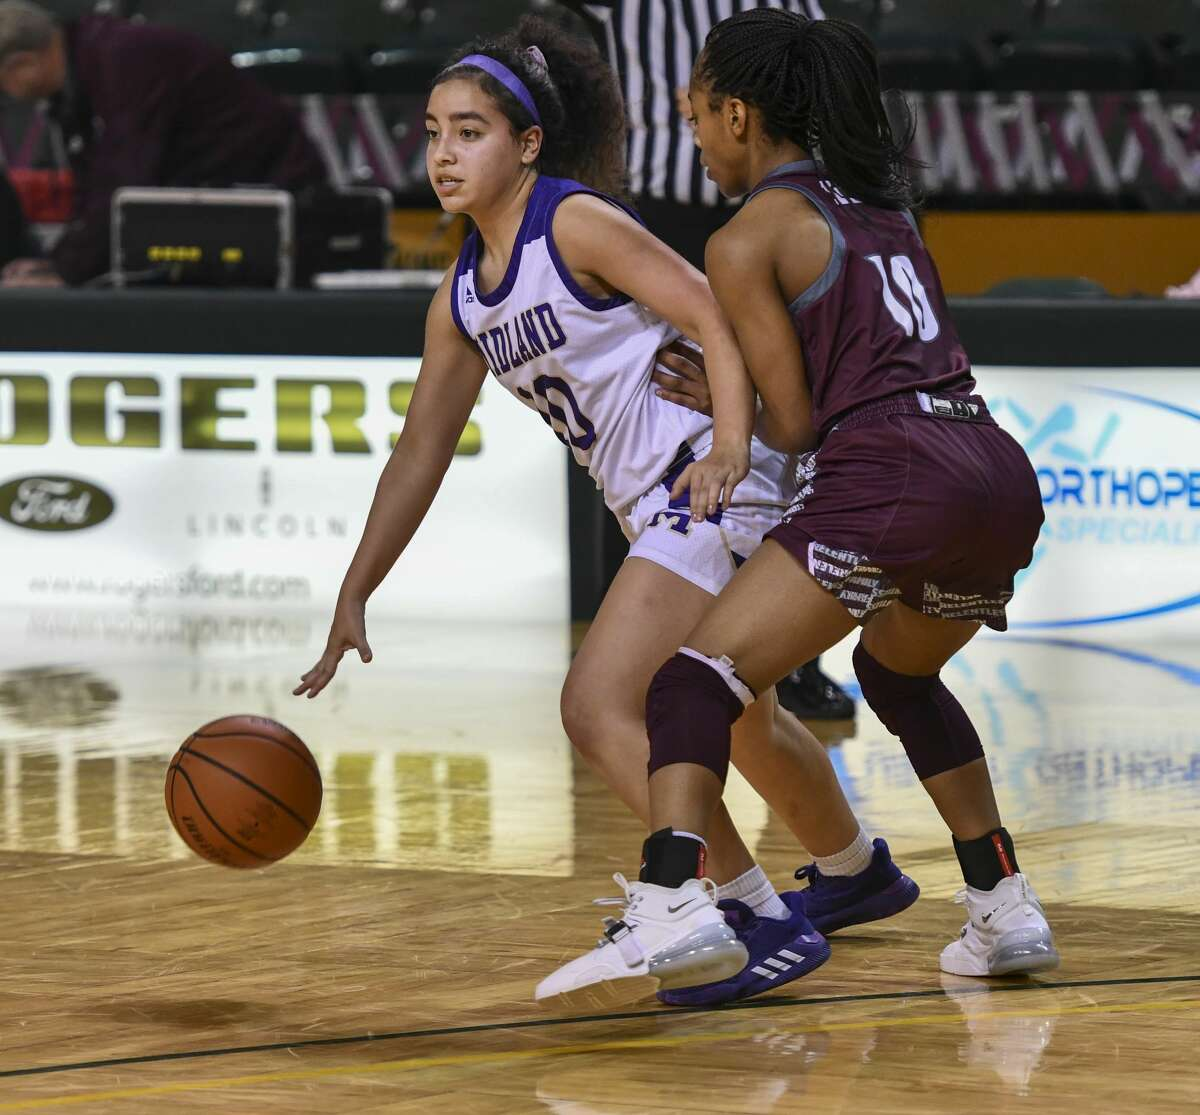 Lee's Destiny Stanford (10) guards Midland High's Madison Benavidez as she dribbles the ball Tuesday, Feb. 4, 2020 at Chaparral Center.